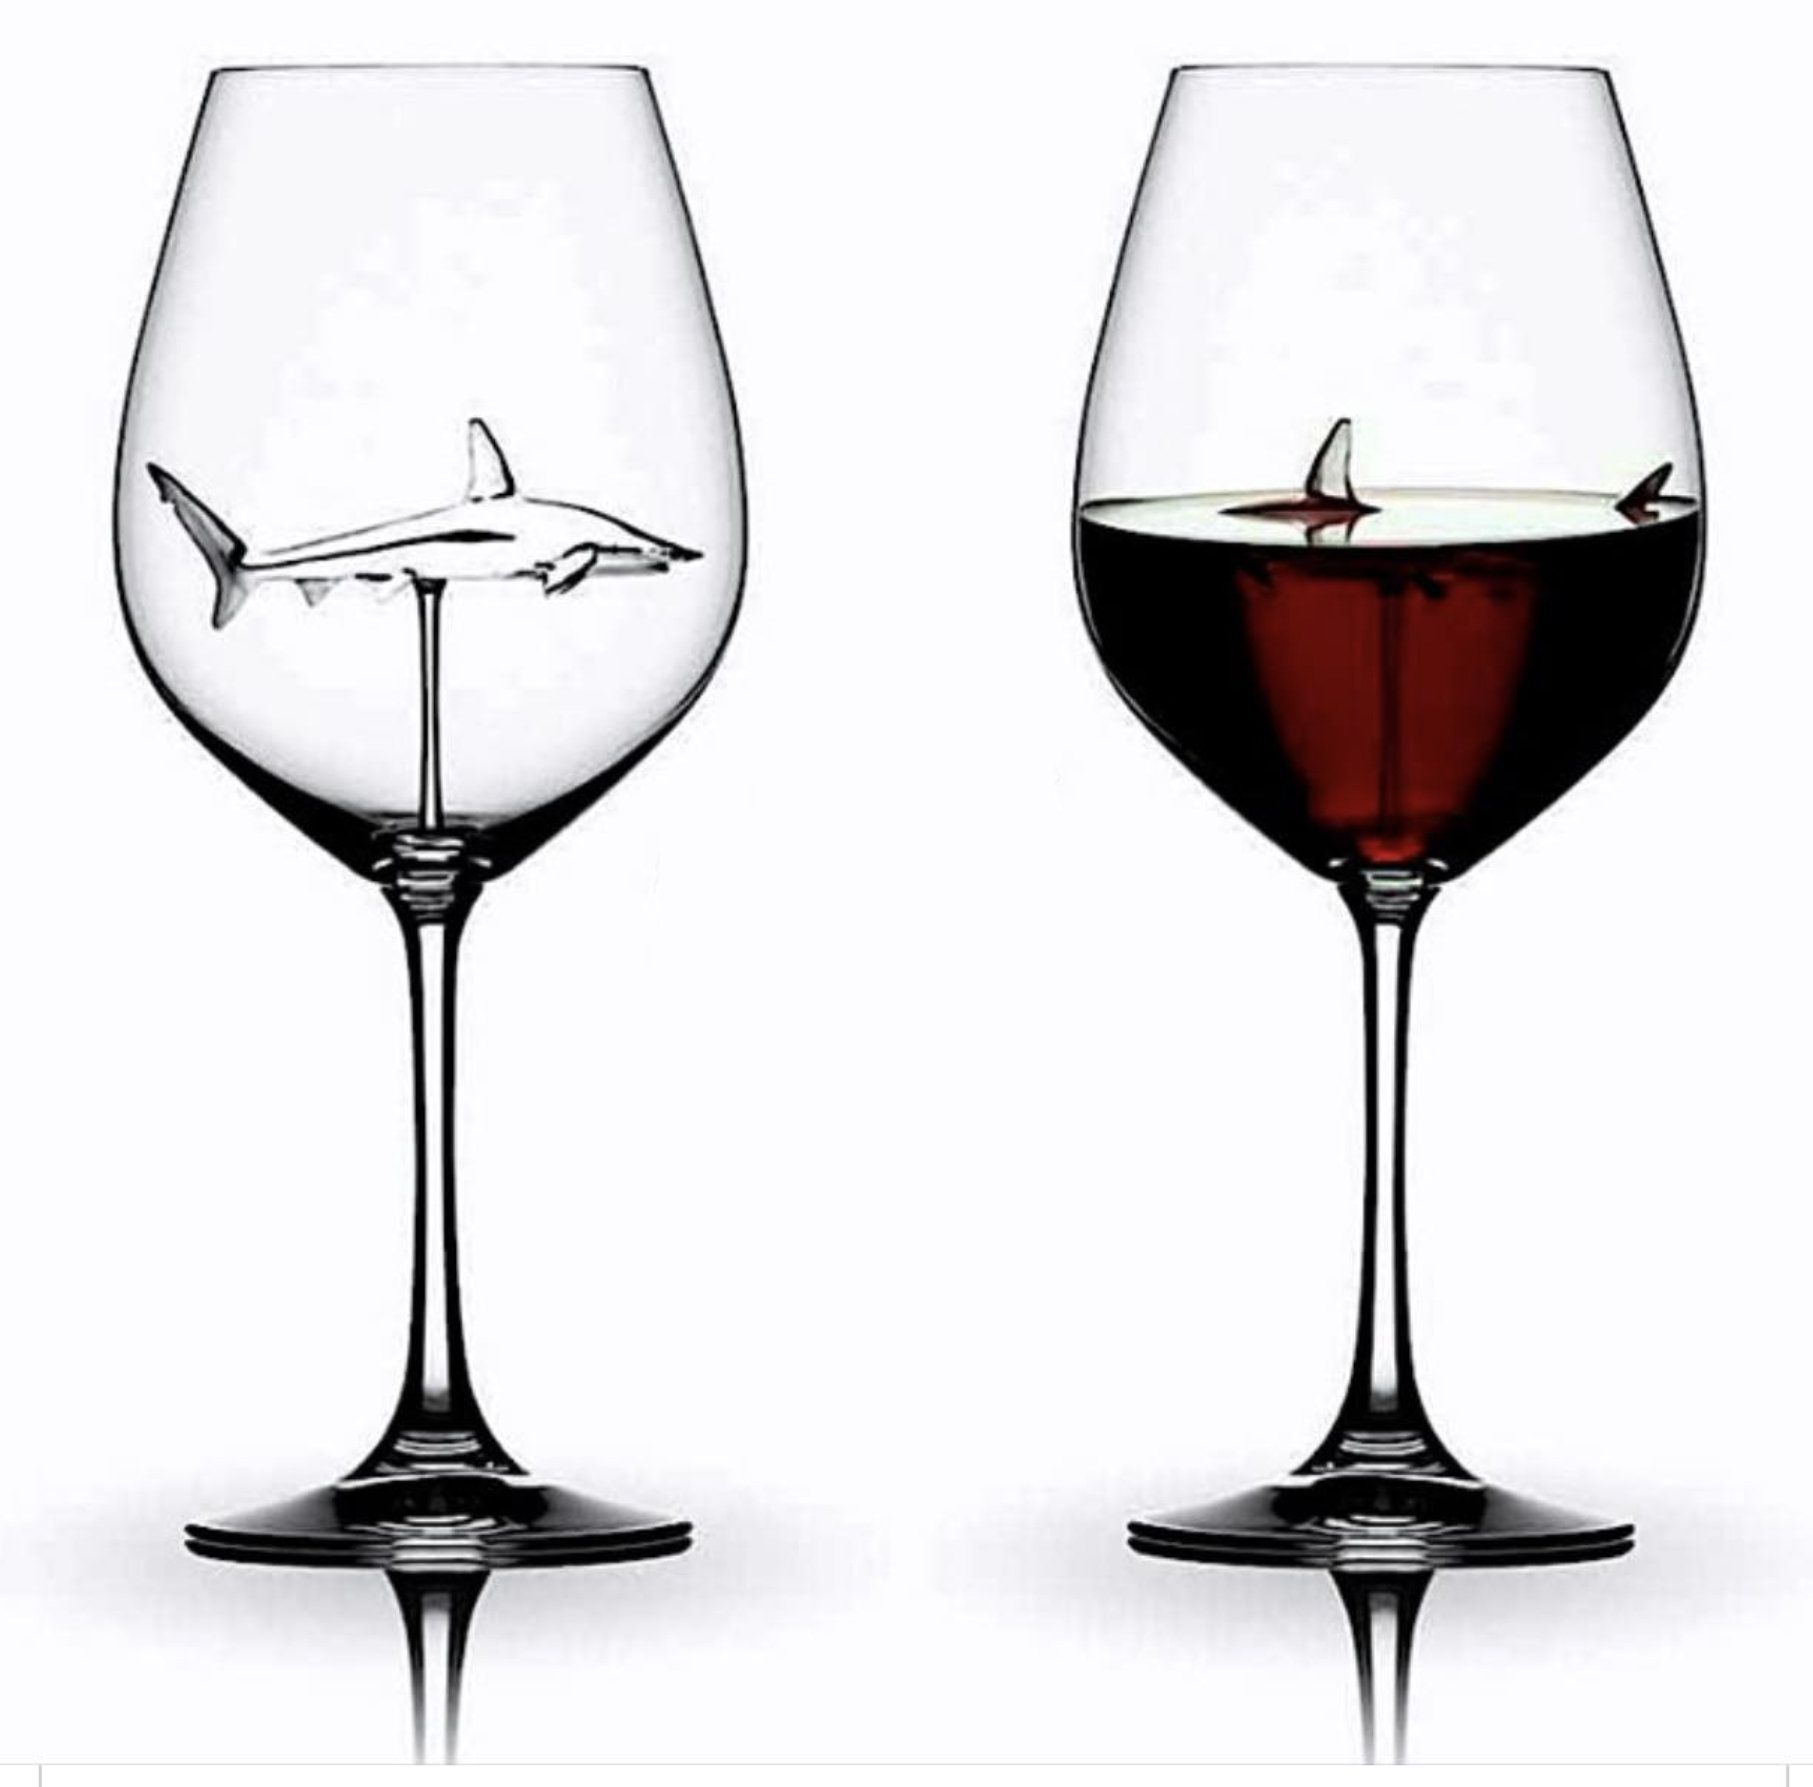 The Shark Wine Glass